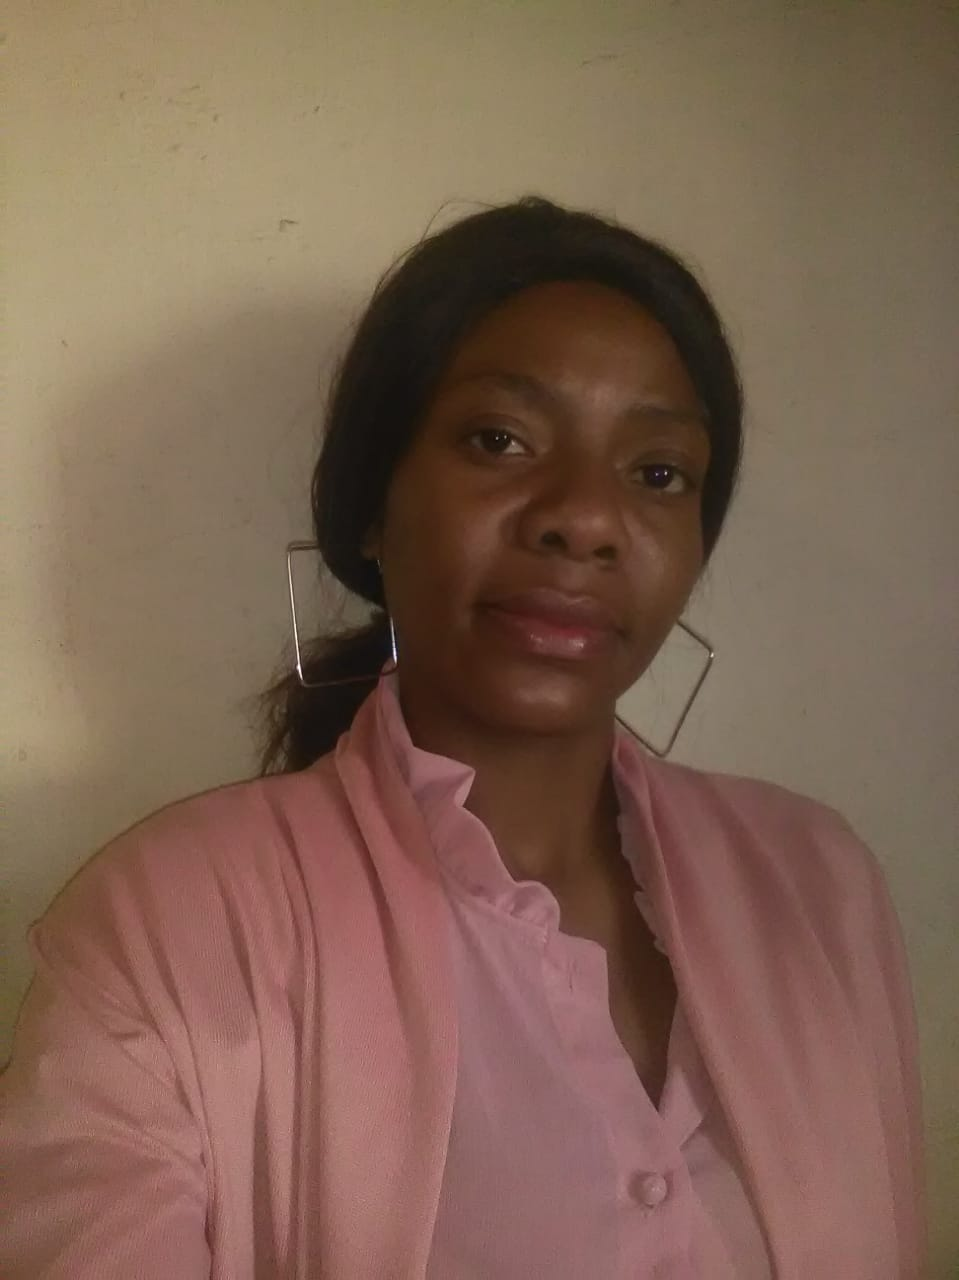 A NANNY AVAILABLE IN PTA EAST FULL TIME